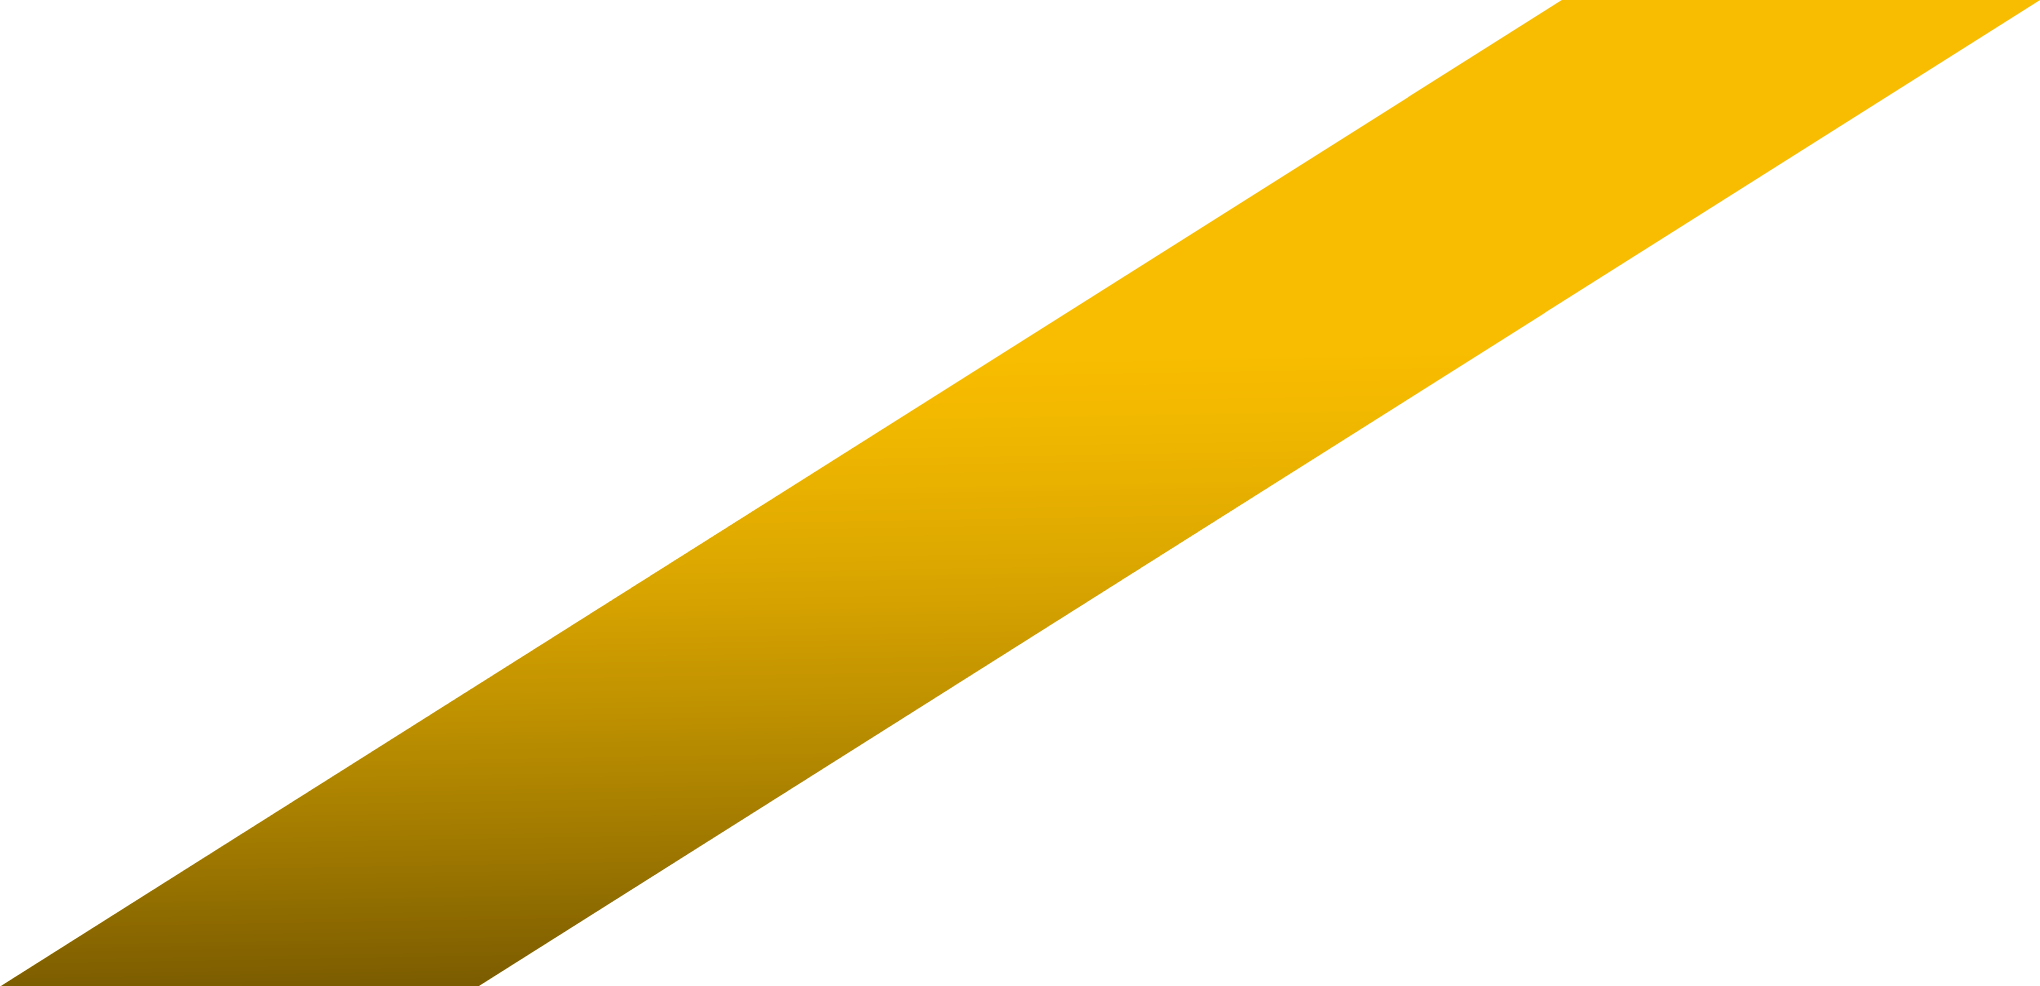 SAU - strip prgroam yellow stripe.png